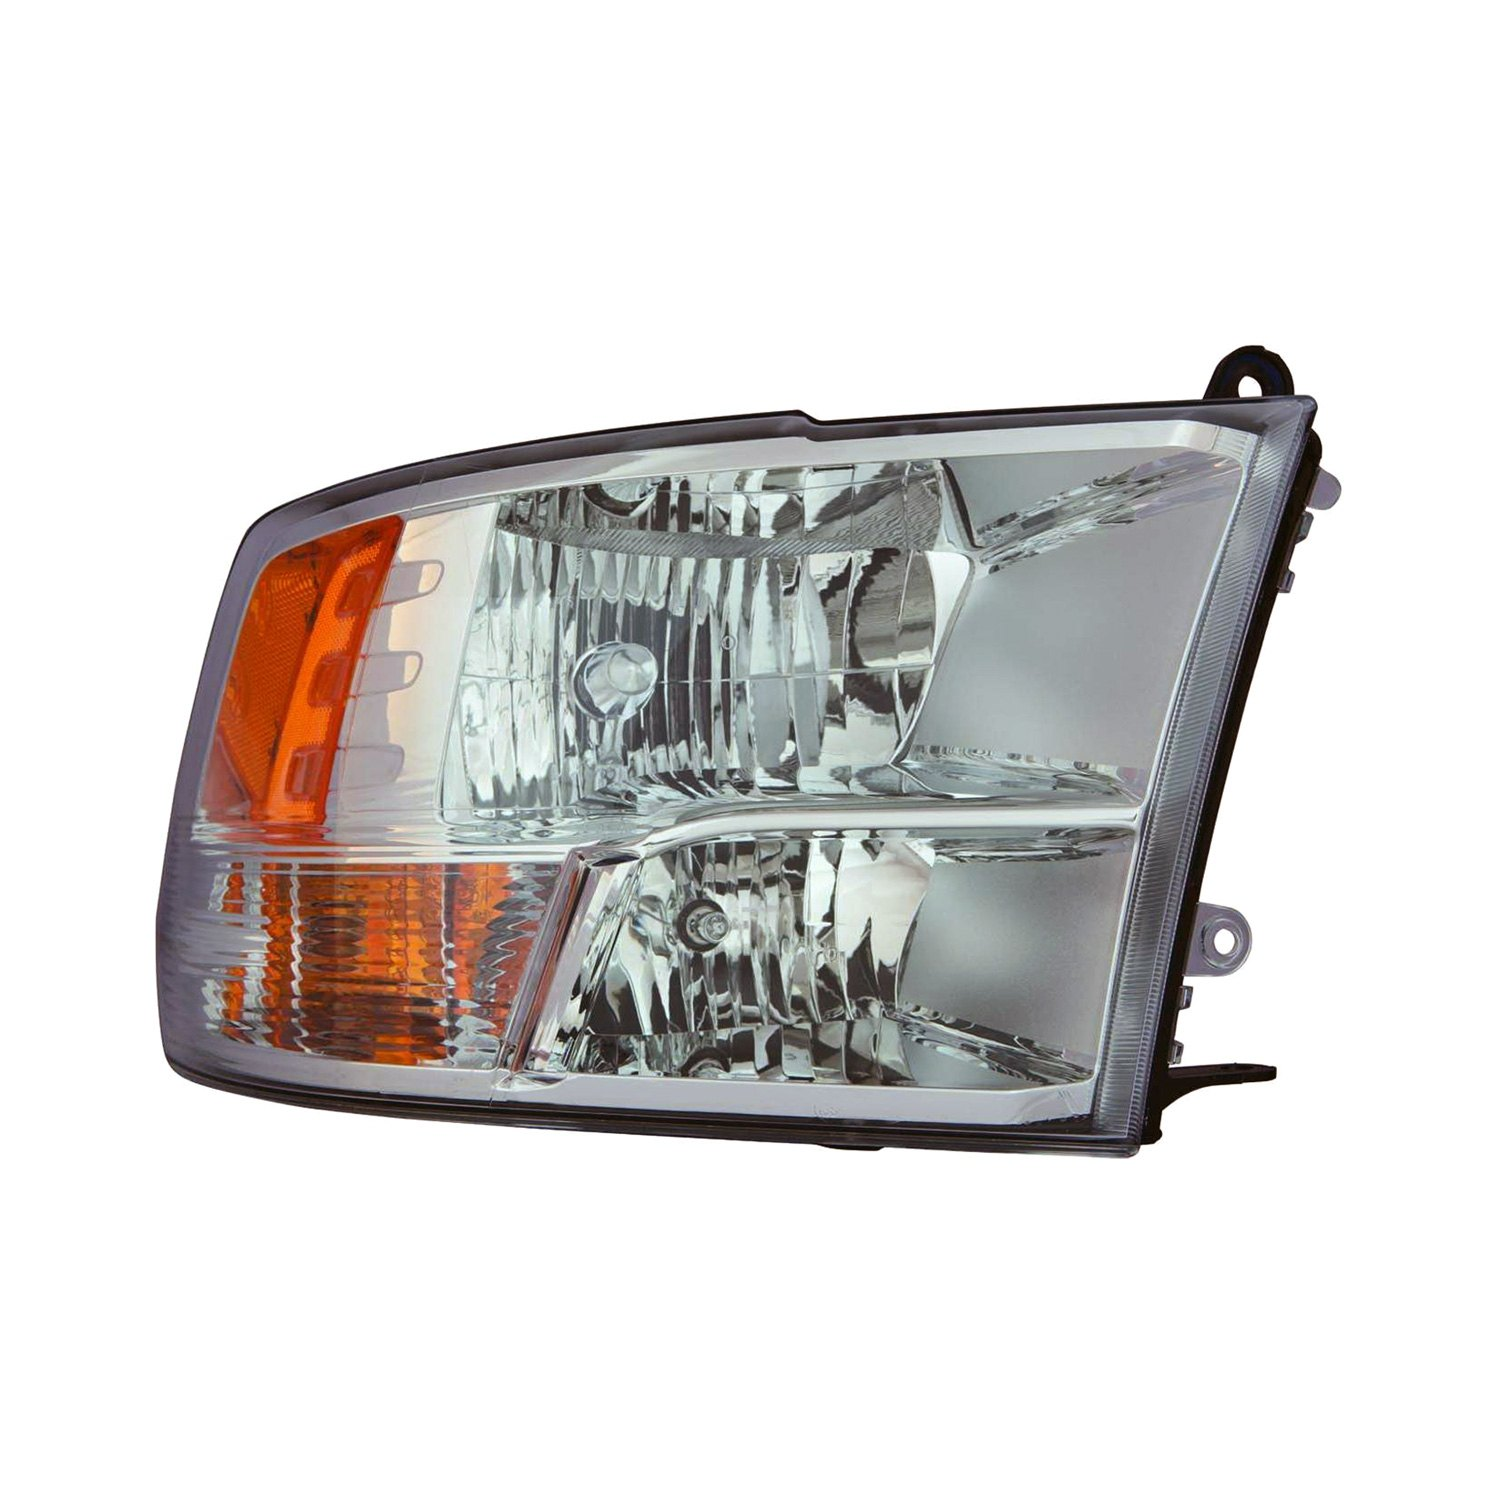 buy cheap Replace® CH2503282C - Passenger Side Replacement Headlight for 2015 RAM 1500 TRUCK Ebay & Amazon